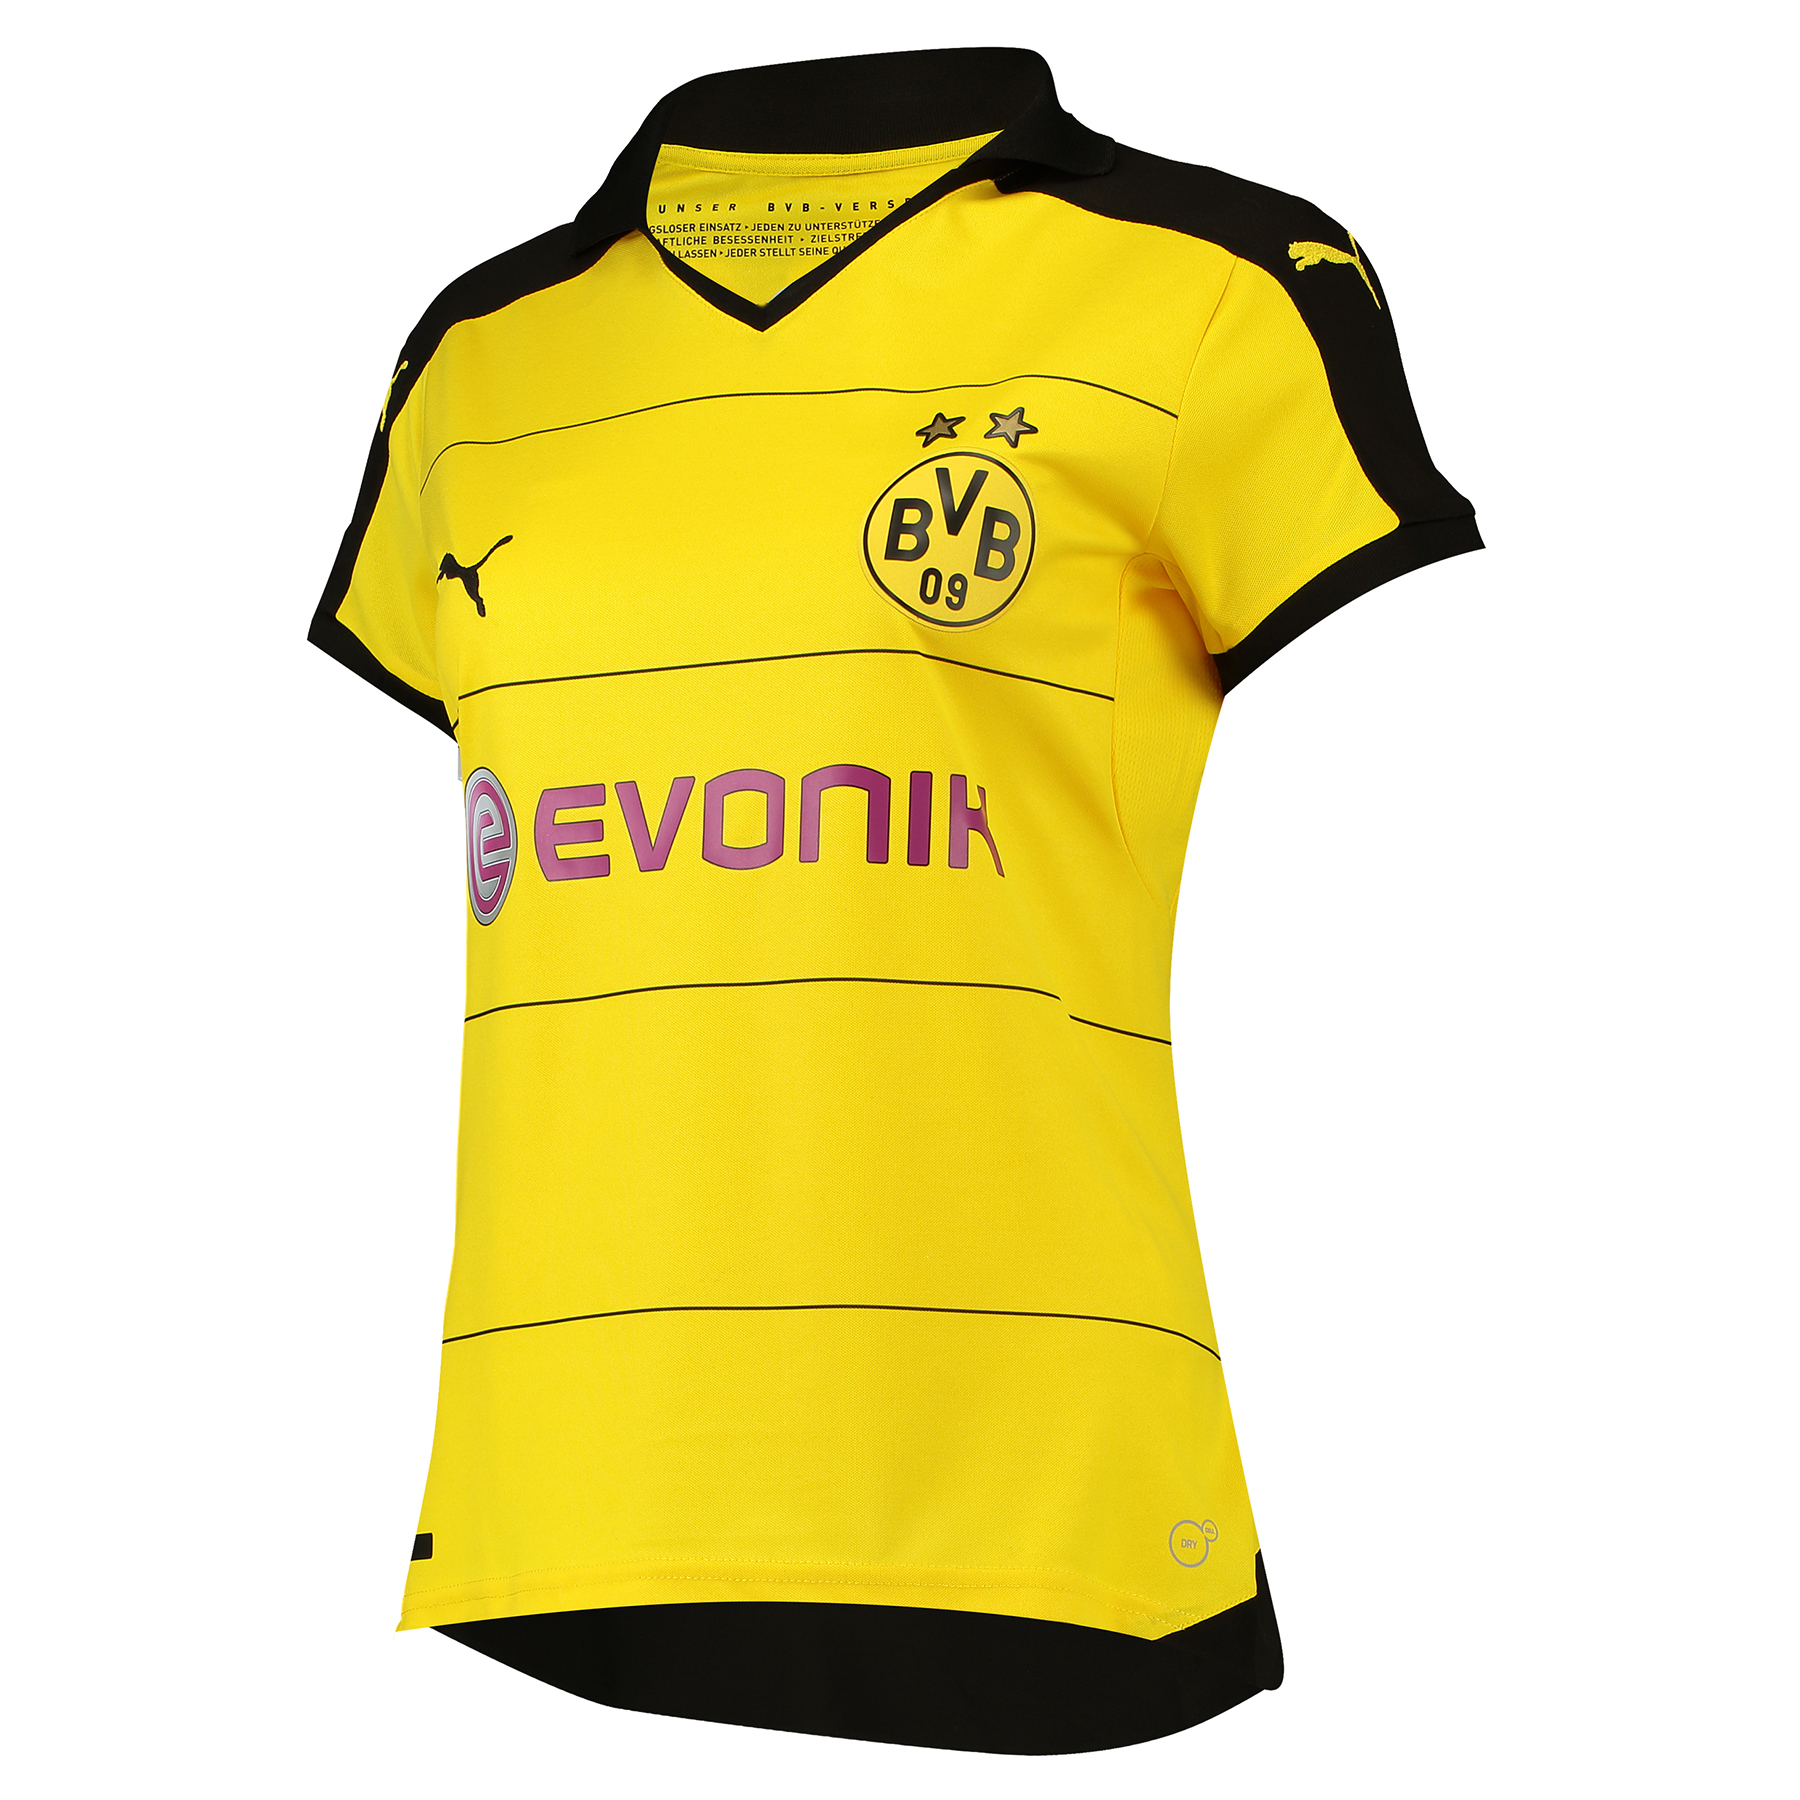 BVB Home Shirt 2015/16 - Womens with Sponsor Yellow